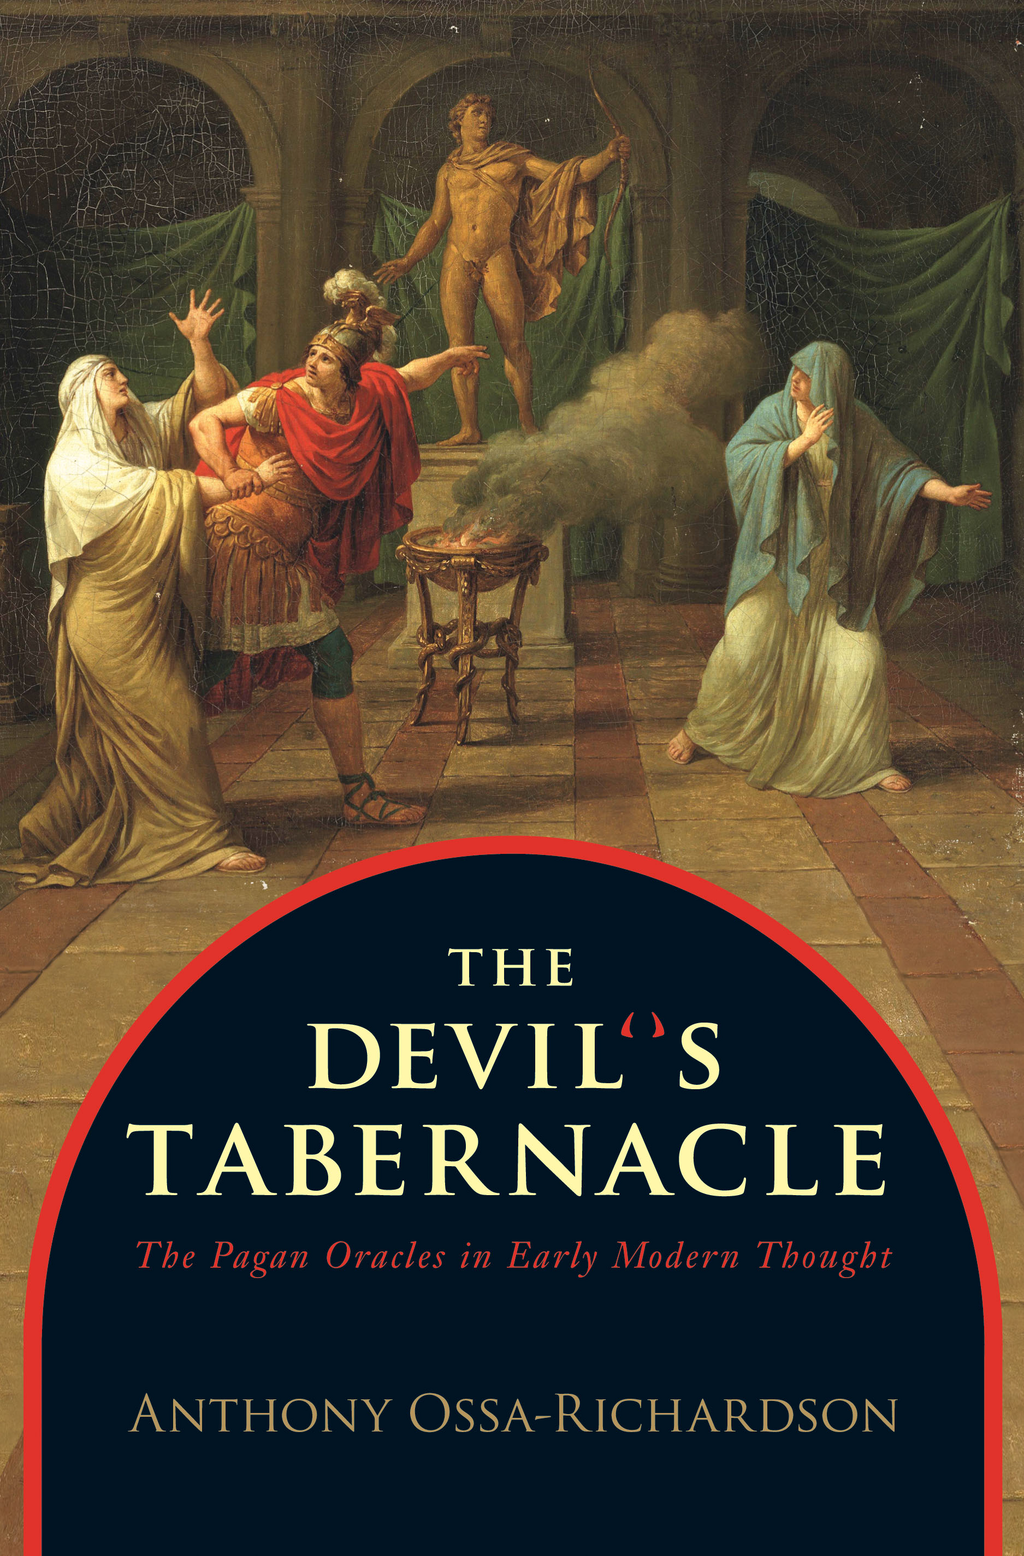 The Devil's Tabernacle The Pagan Oracles in Early Modern Thought